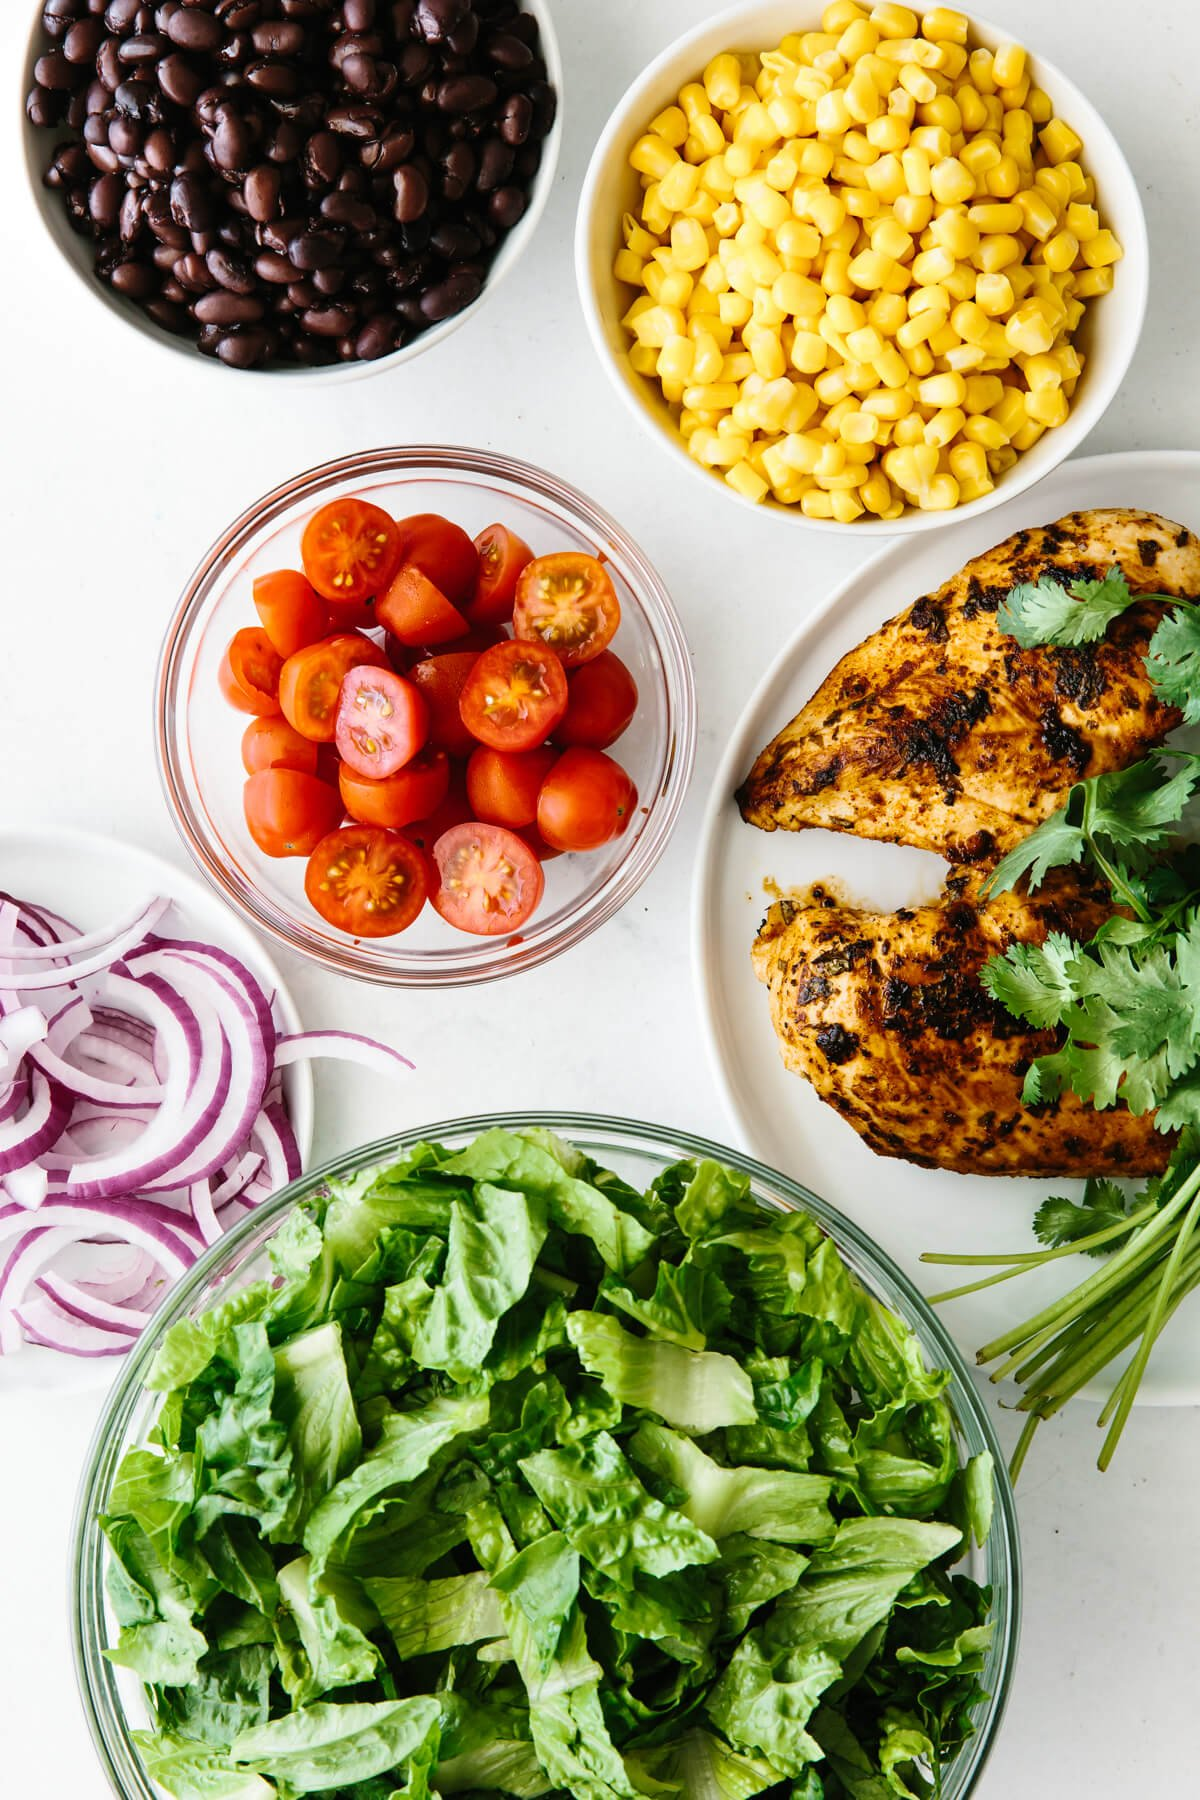 The ingredients to make southwestern chicken salad all in individual bowls.